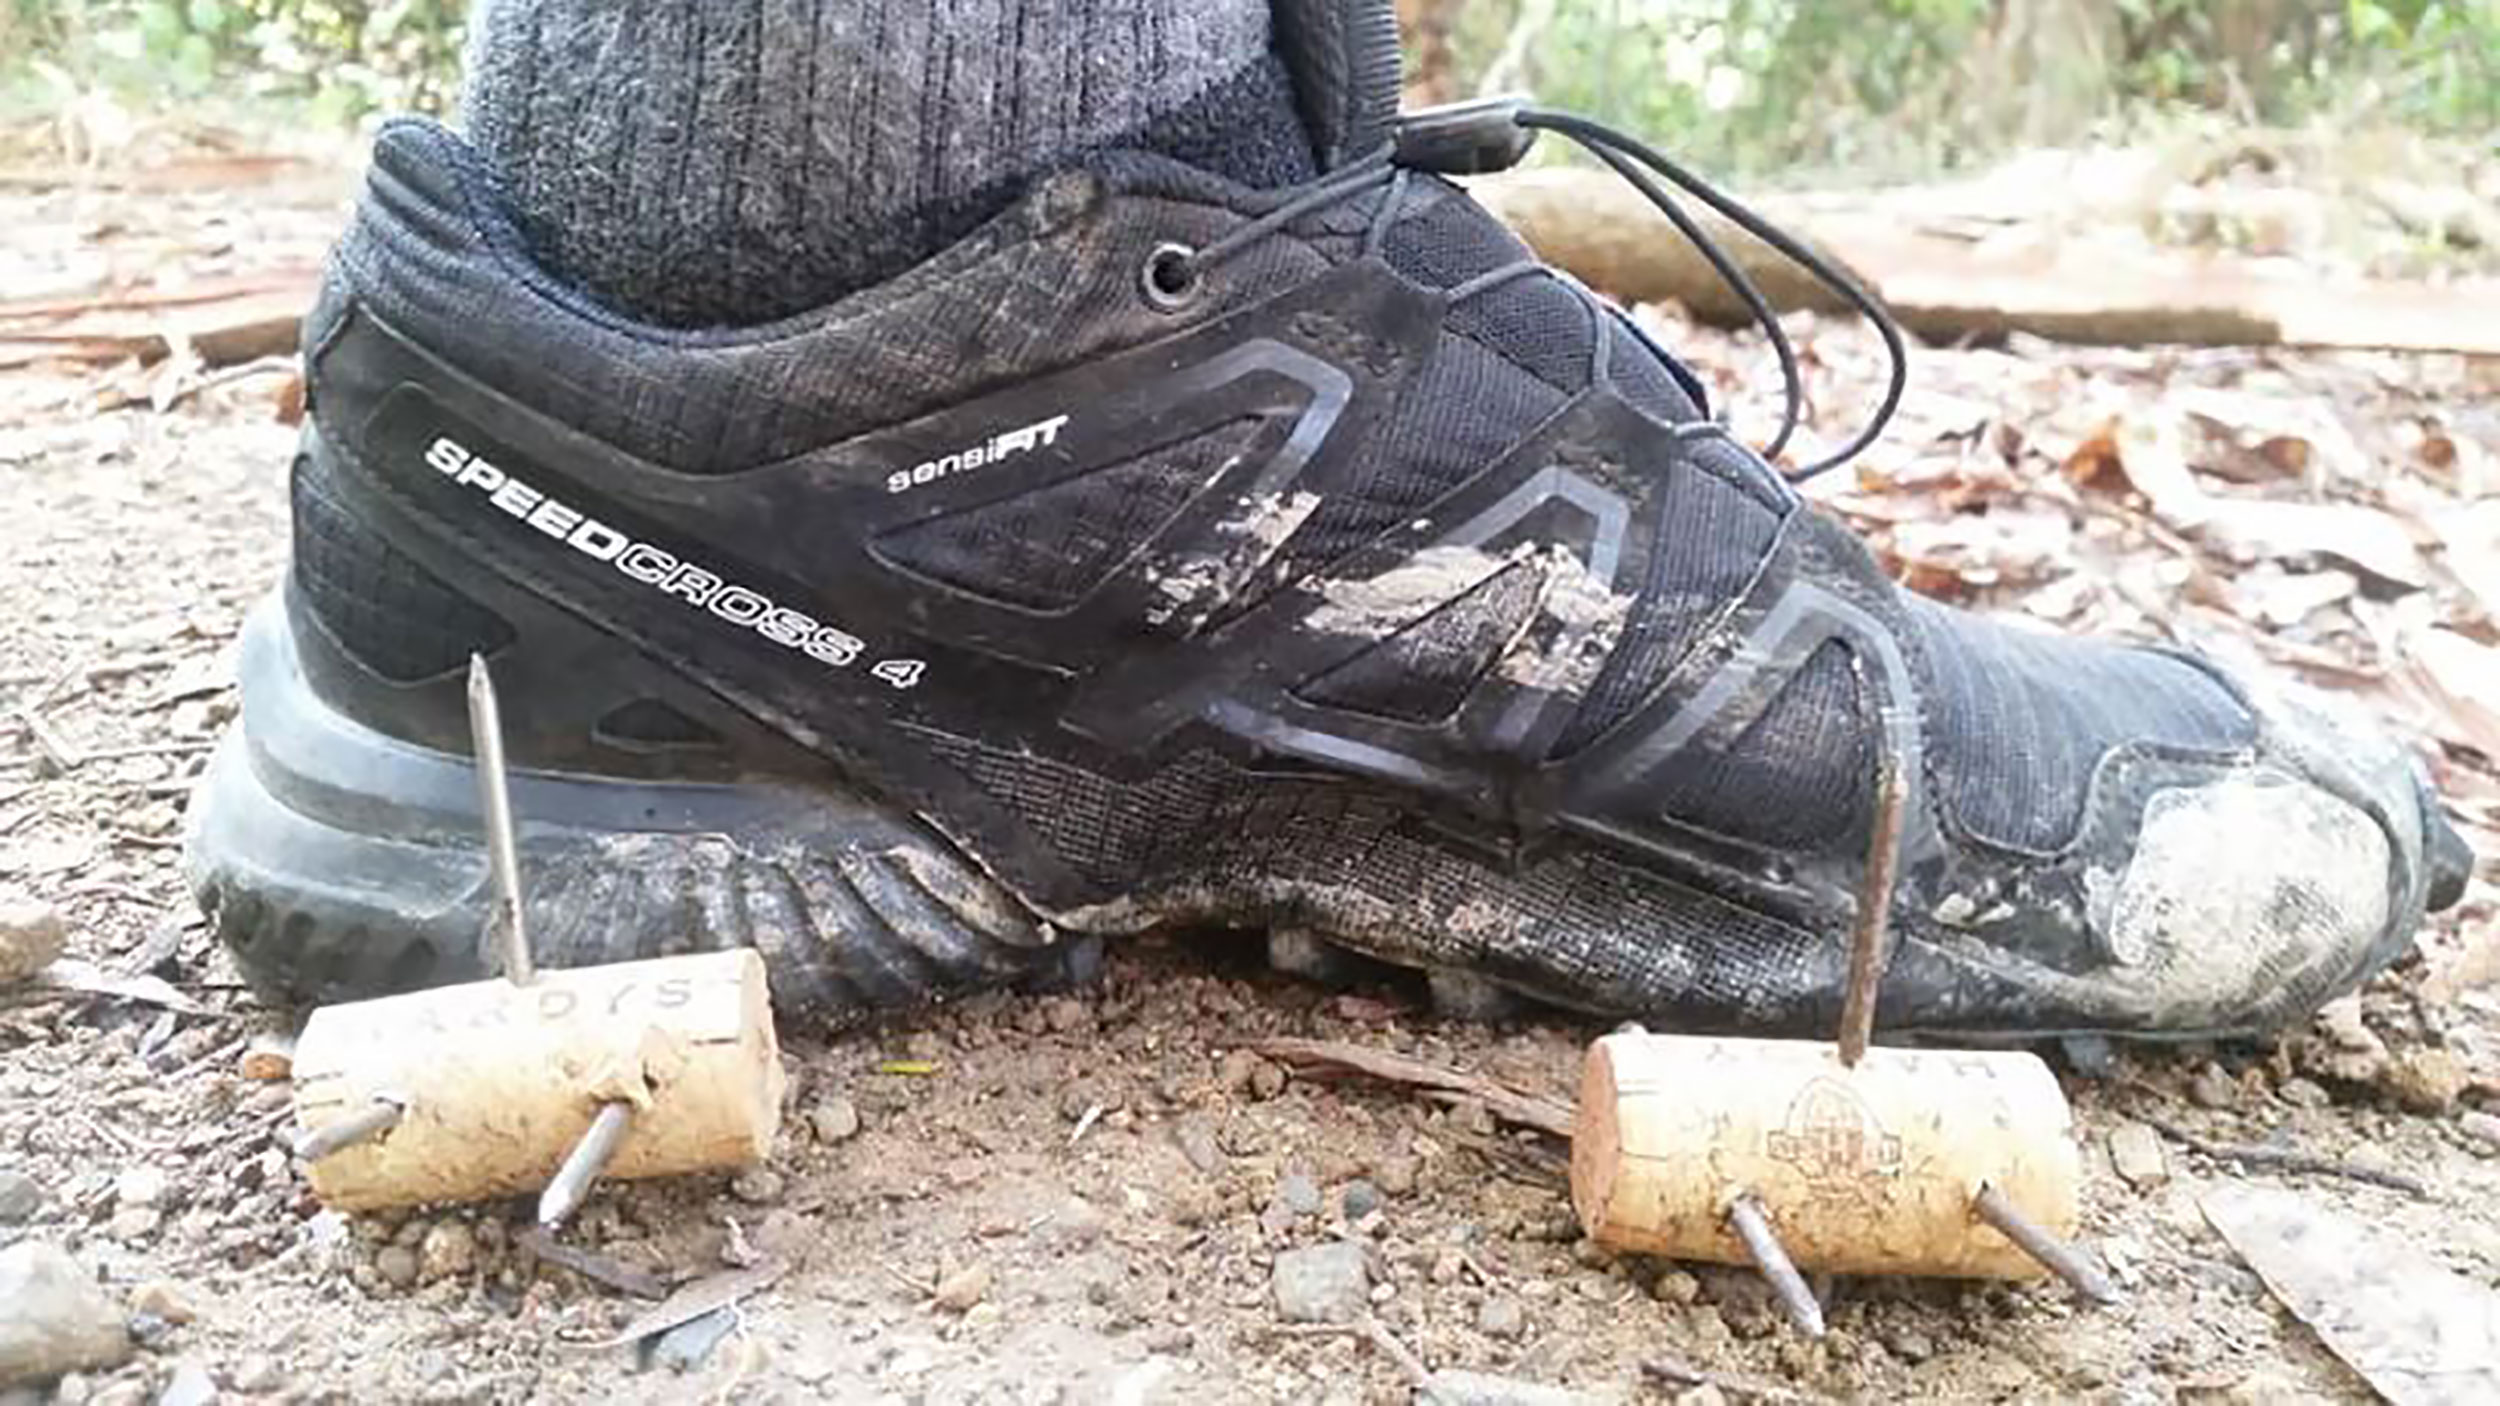 An Australian runner found dangerous spikes hidden on a popular nature trail